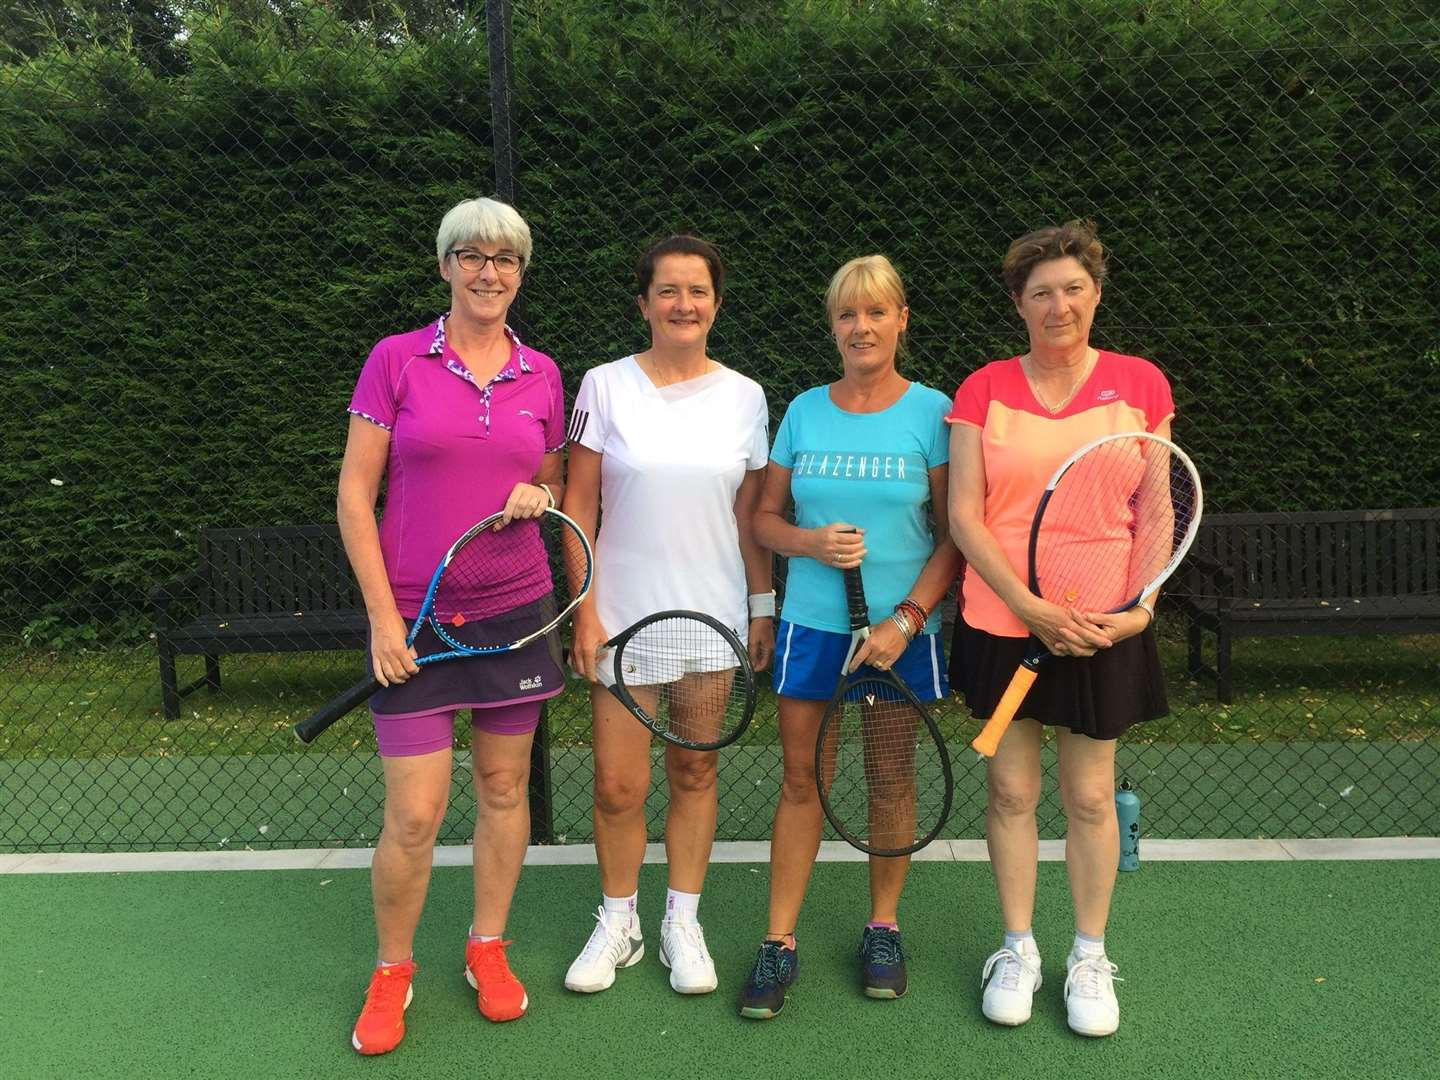 Wisbech tennis Jane Page, Sheila Hennessy, Jacqui West and Wendy Cropp (15105408)